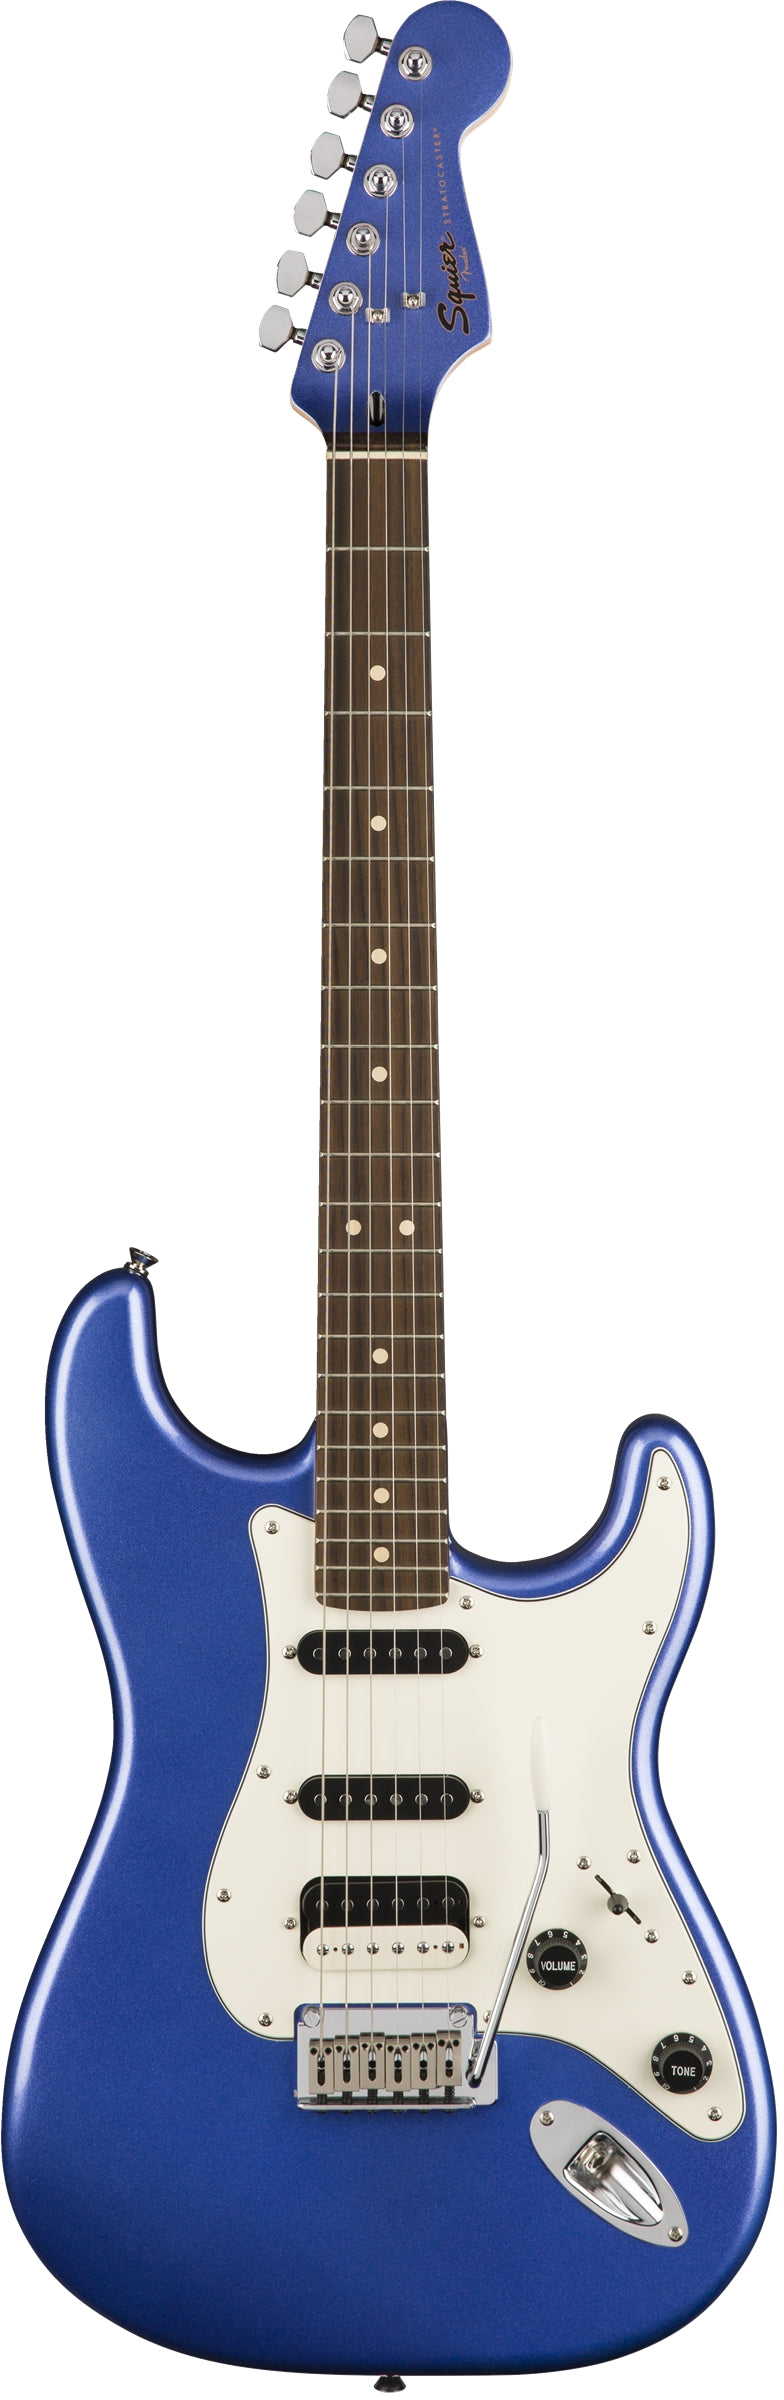 Squier Contemporary Stratocaster HSS RW Electric Guitar